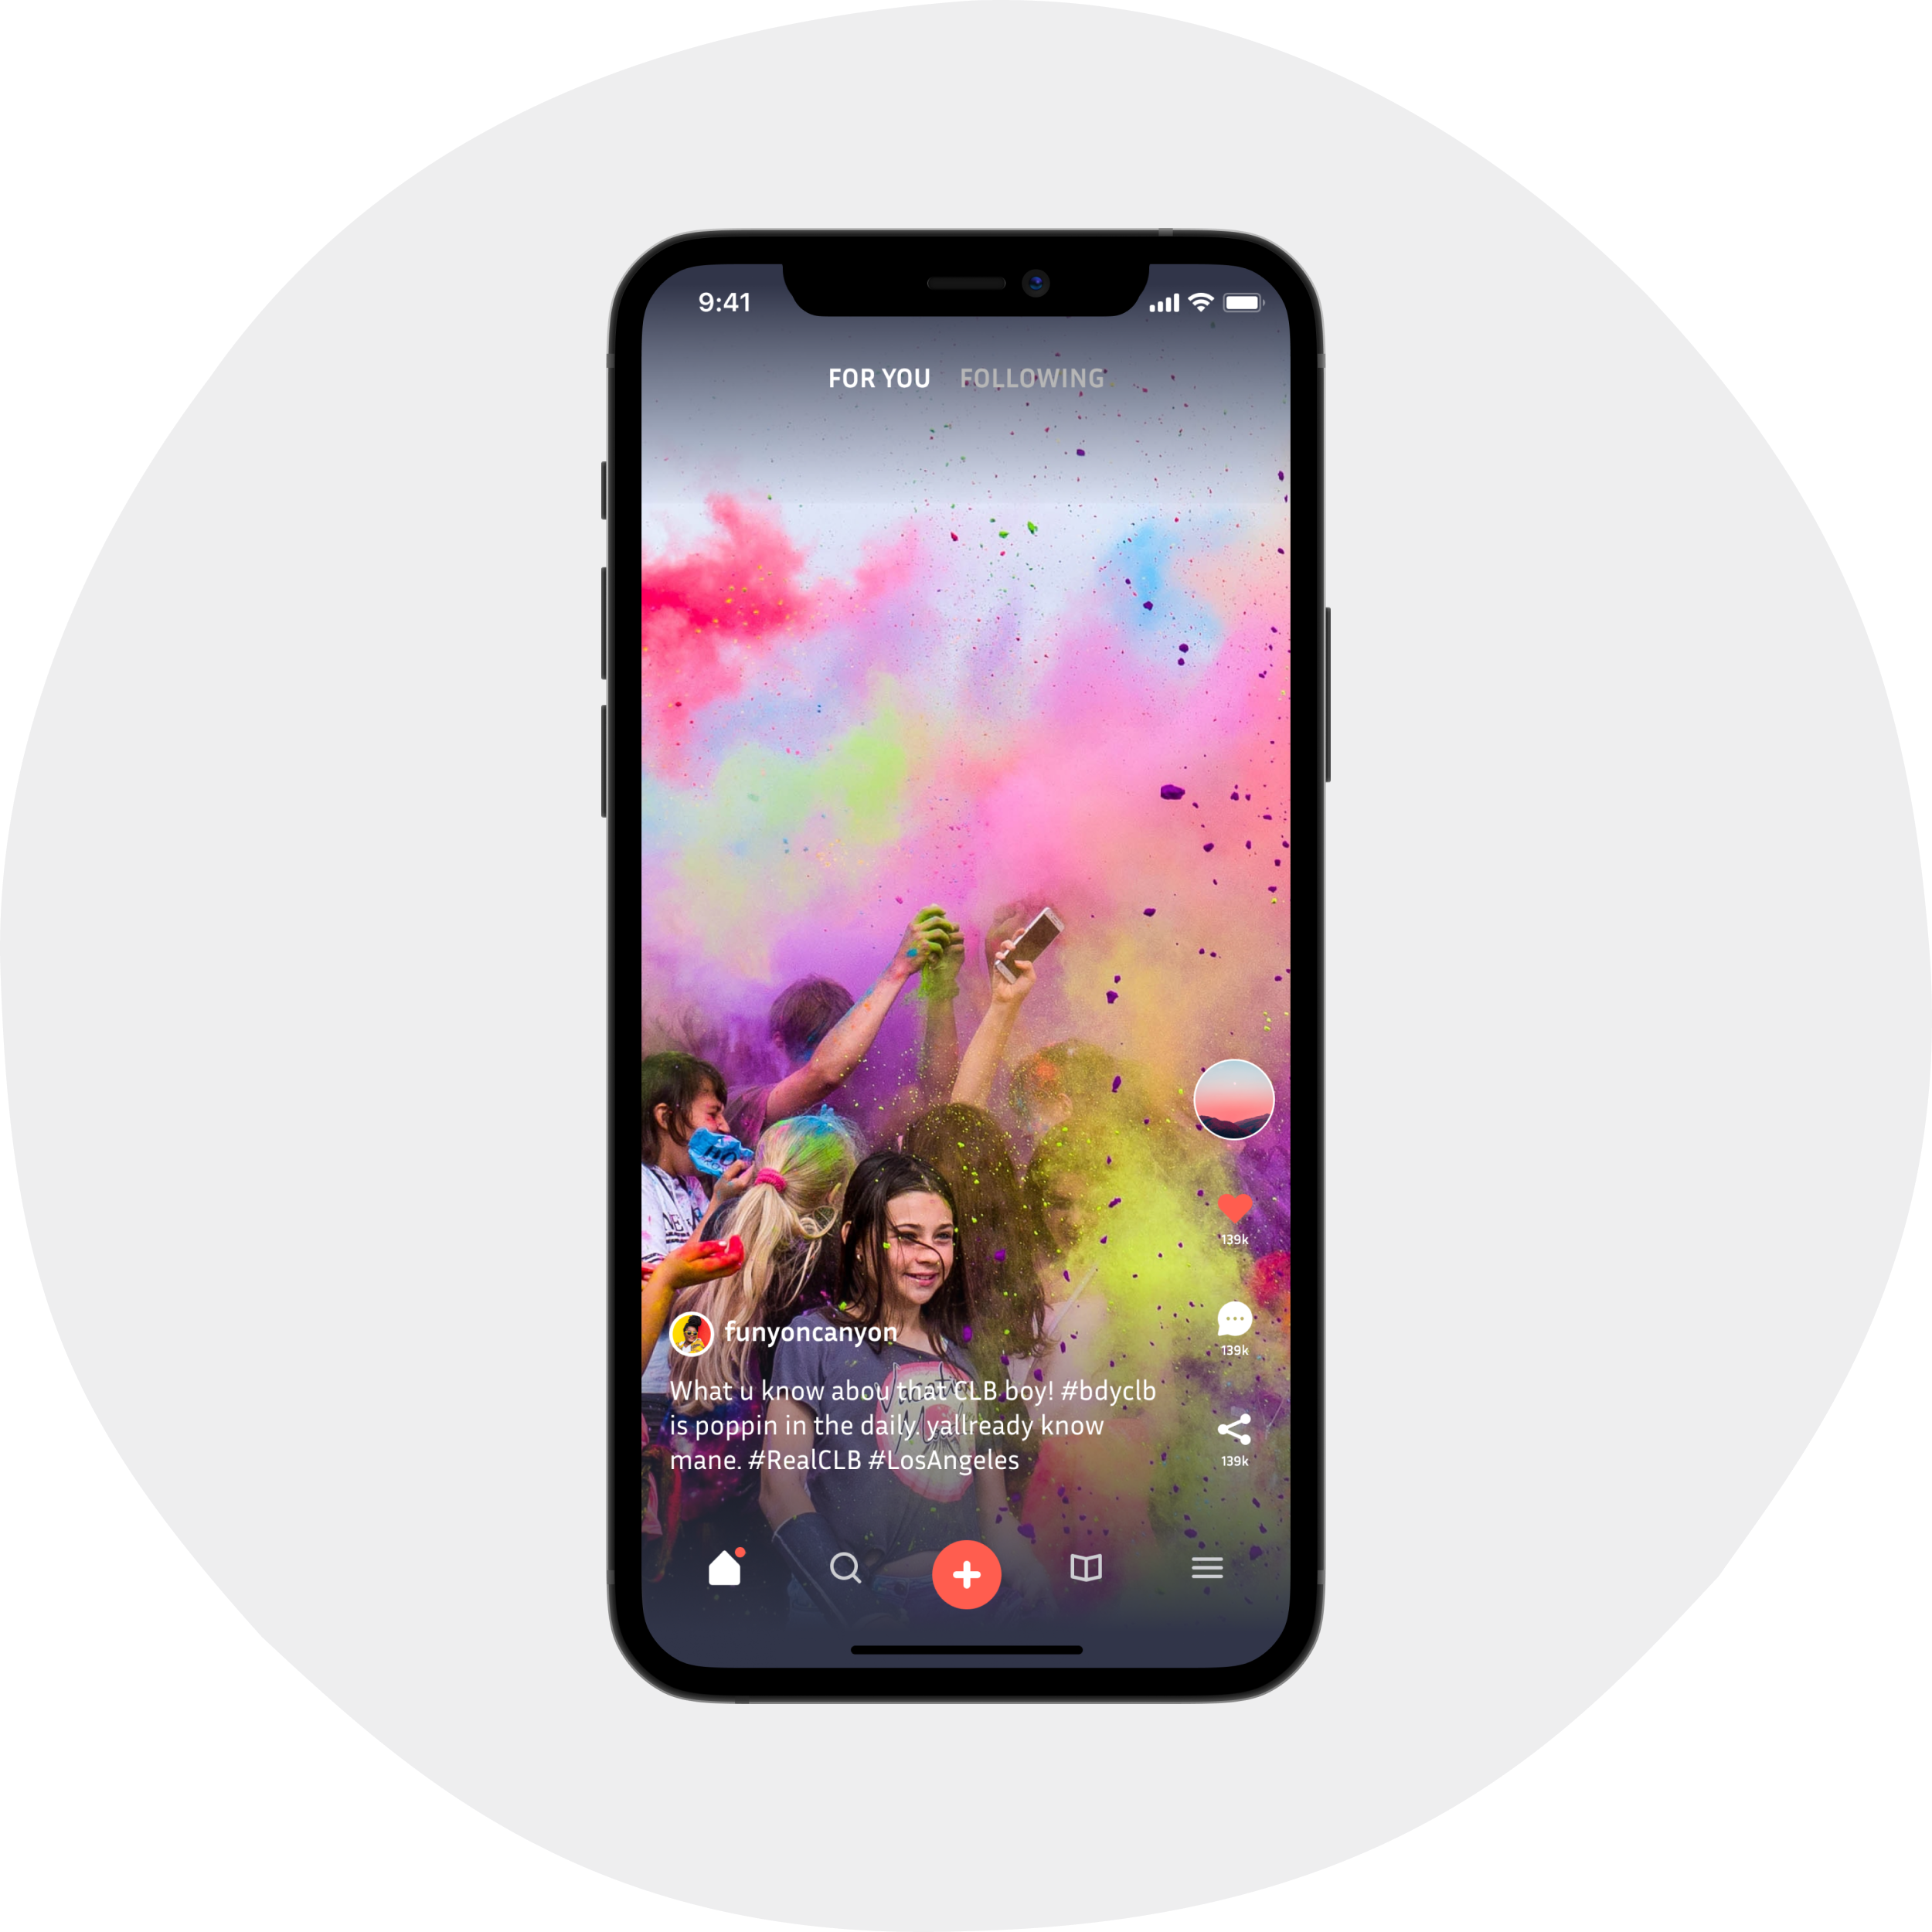 Picture of someones hand holding a smartphone. In said hand they have an app open on a video. Some huge colorful party...the video's focused on someone who is not on their phone. Nice one.